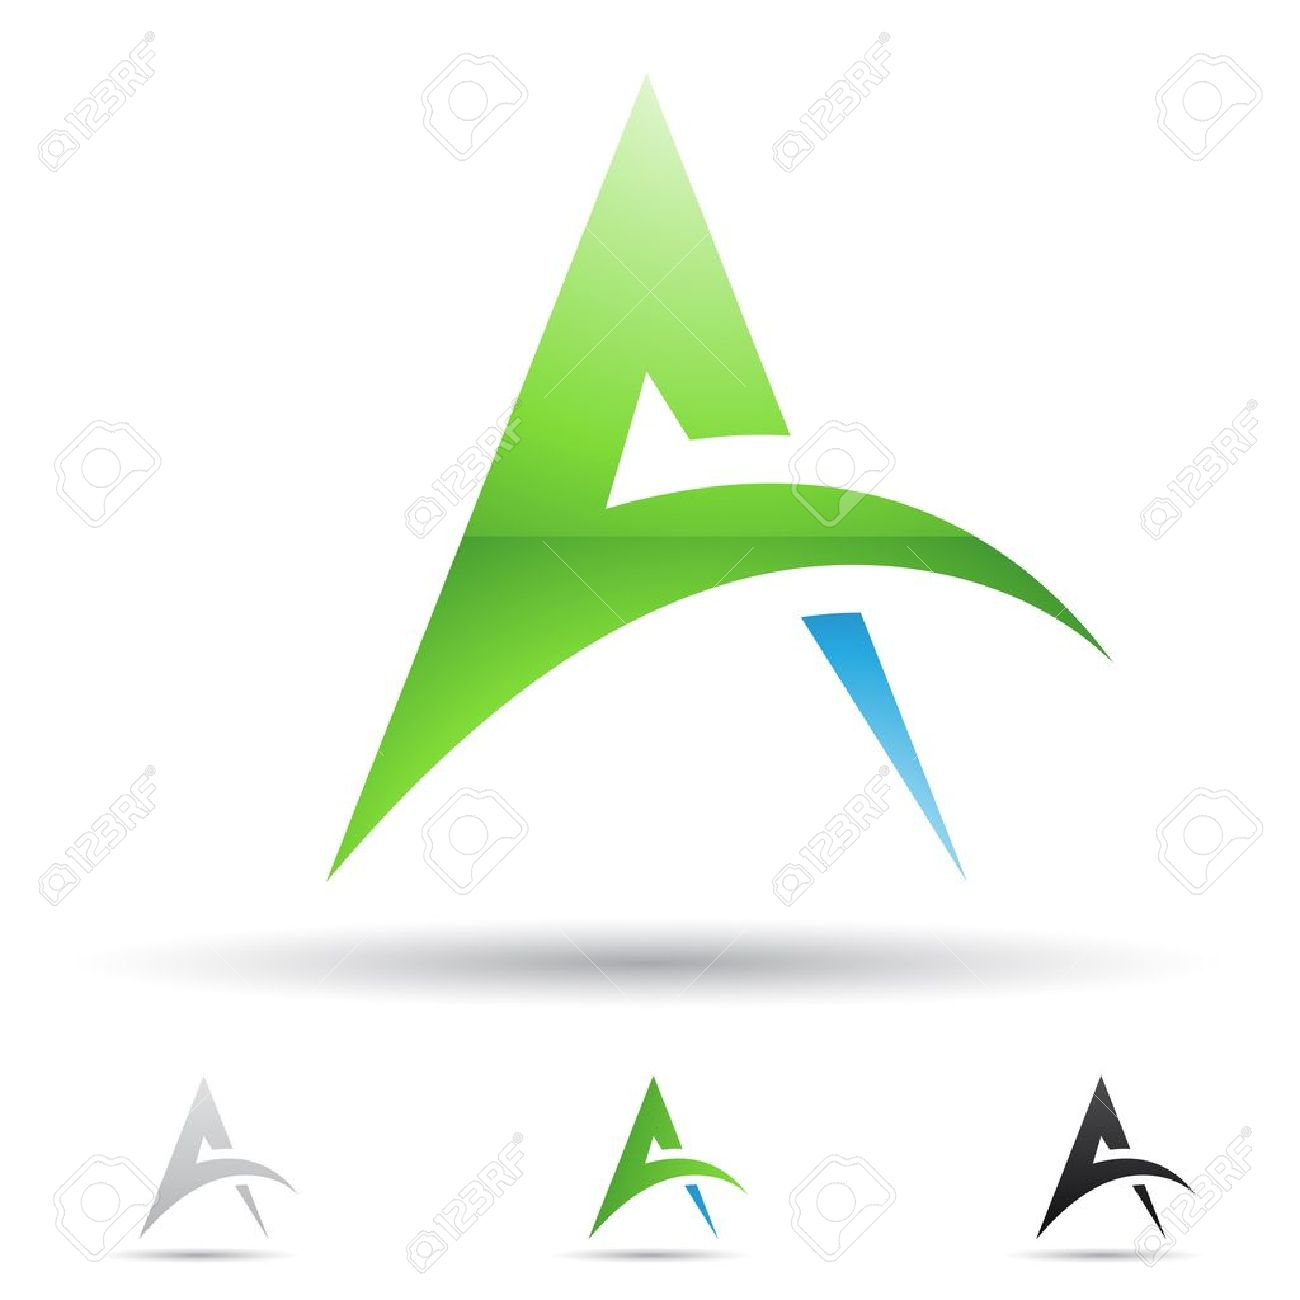 abstract icons based on the letter A Stock Vector - 14594435